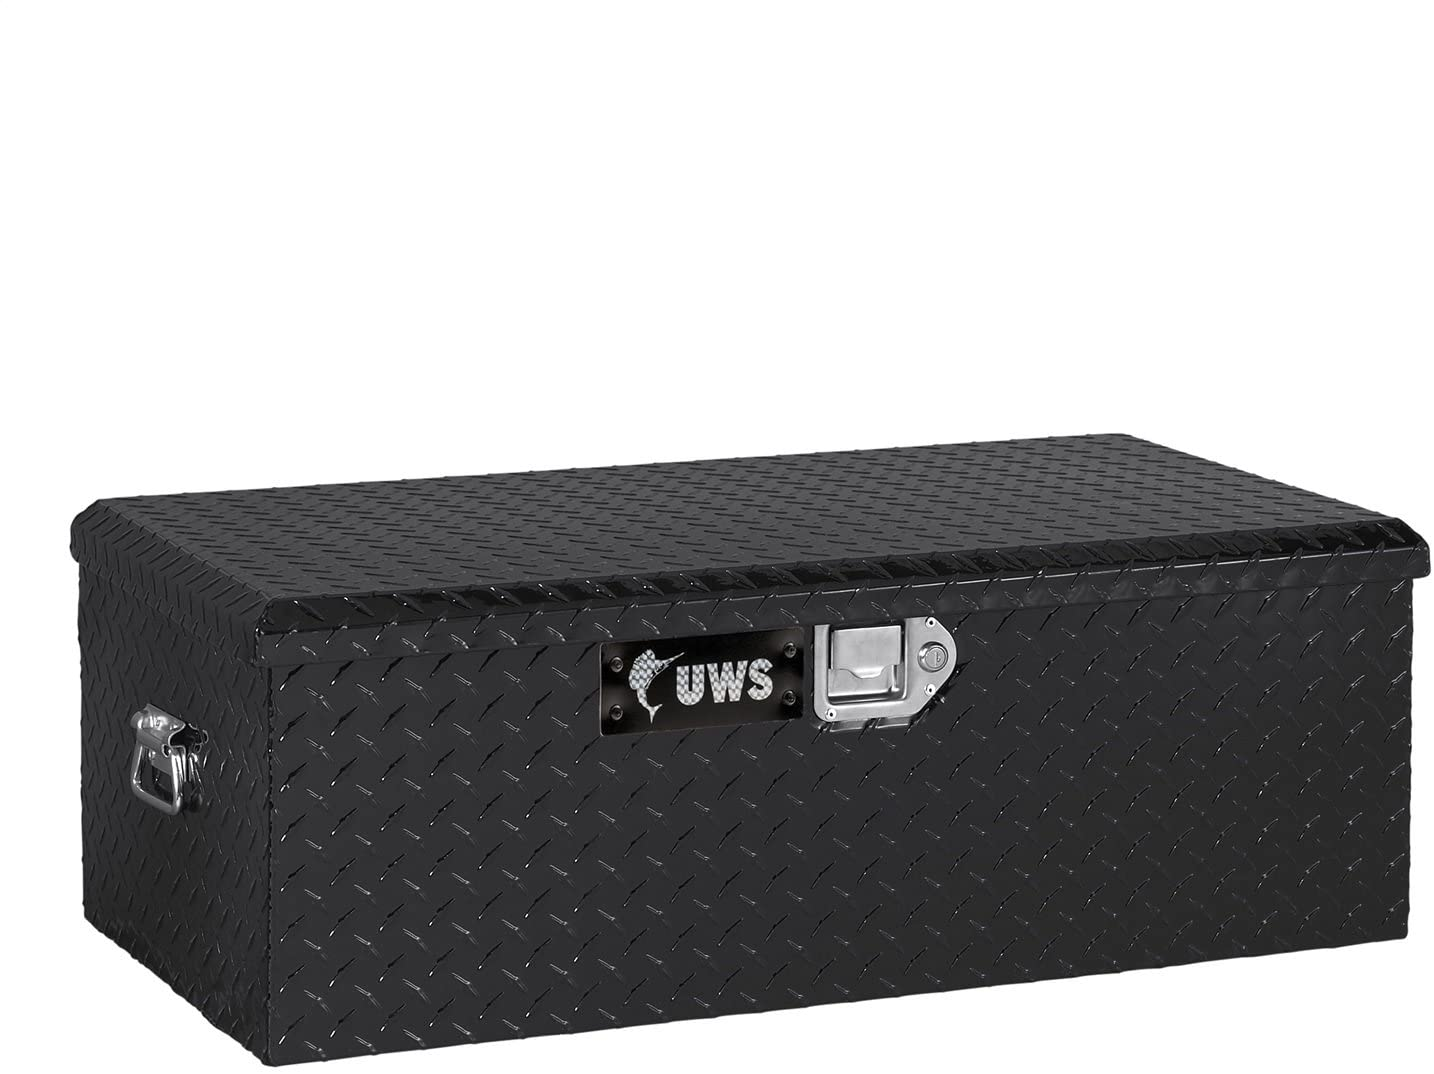 UWS FOOT-LOCKER-BLK Black Foot Locker Chest with End Pull Handles and Beveled Insulated Lid